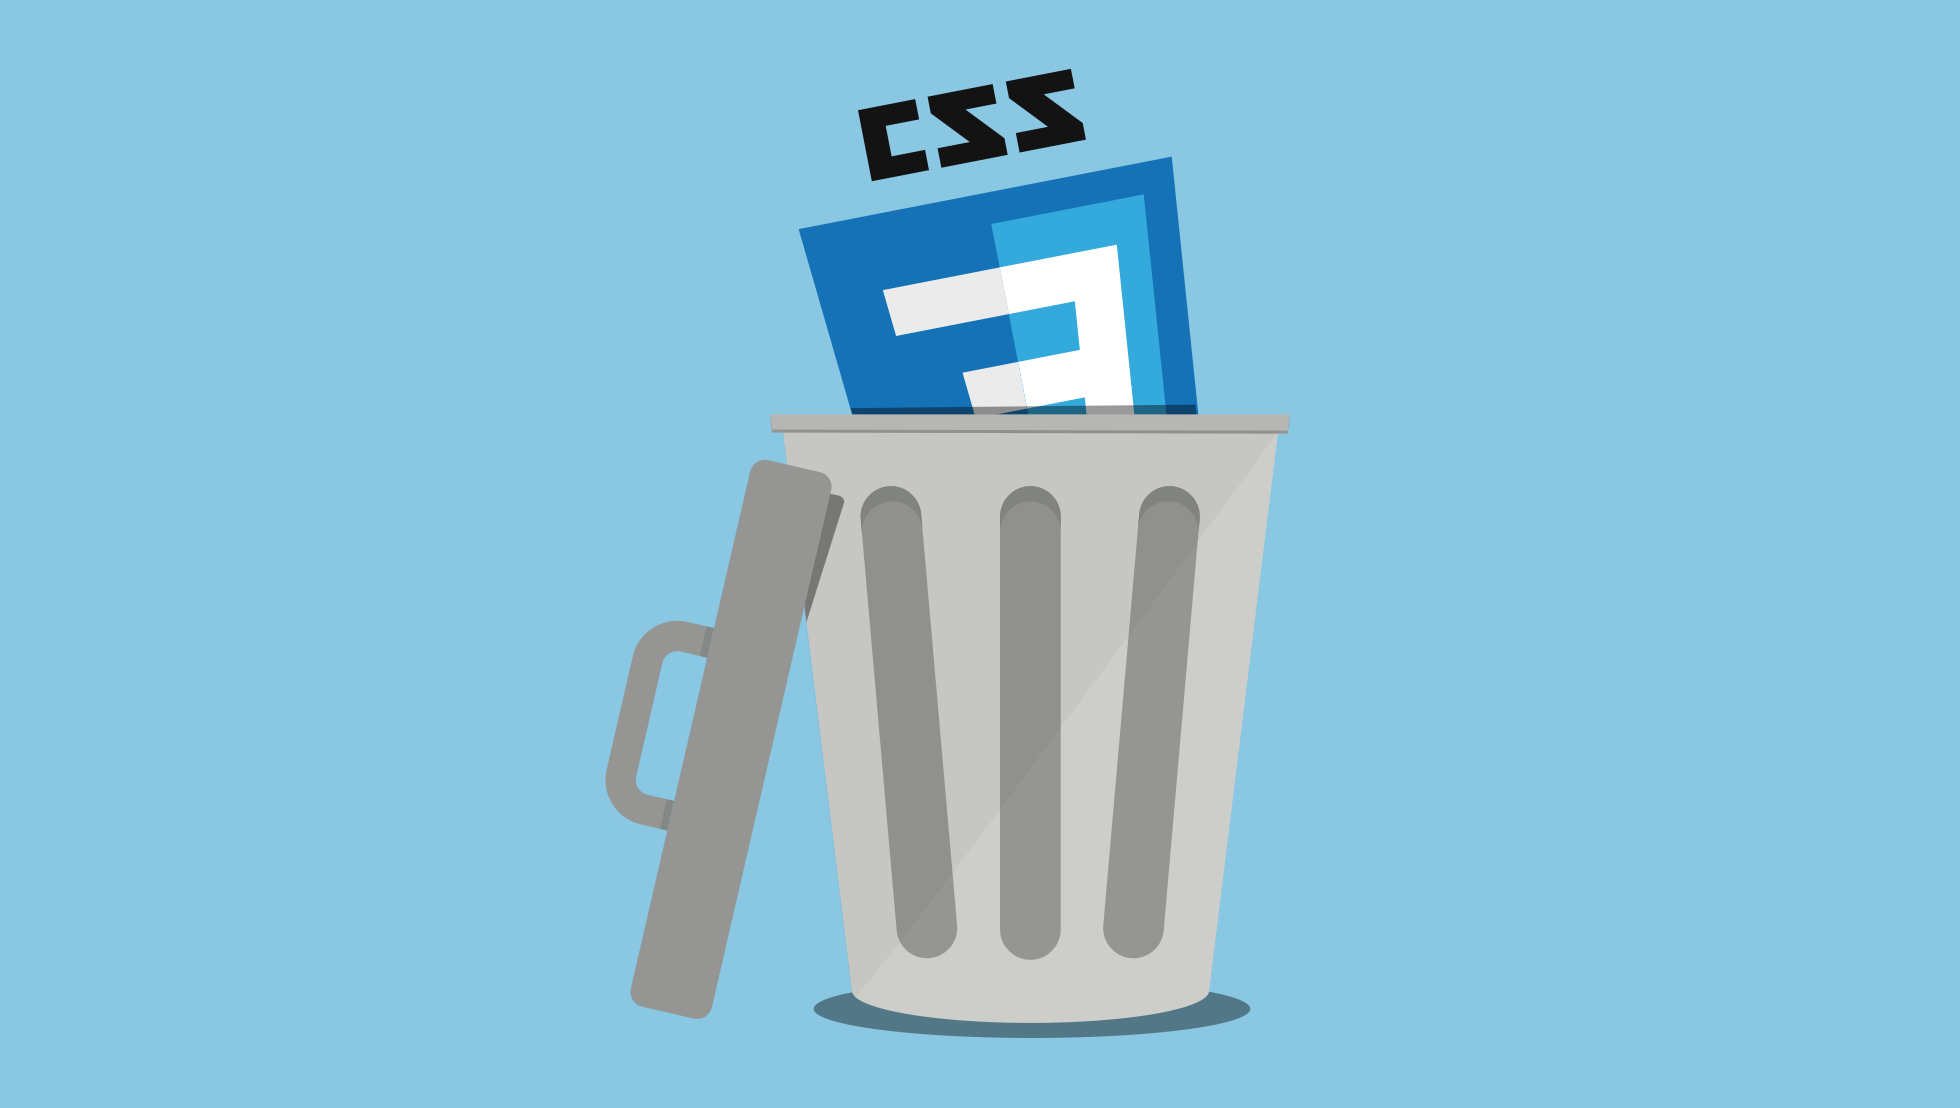 Don't Abandon CSS Just Yet